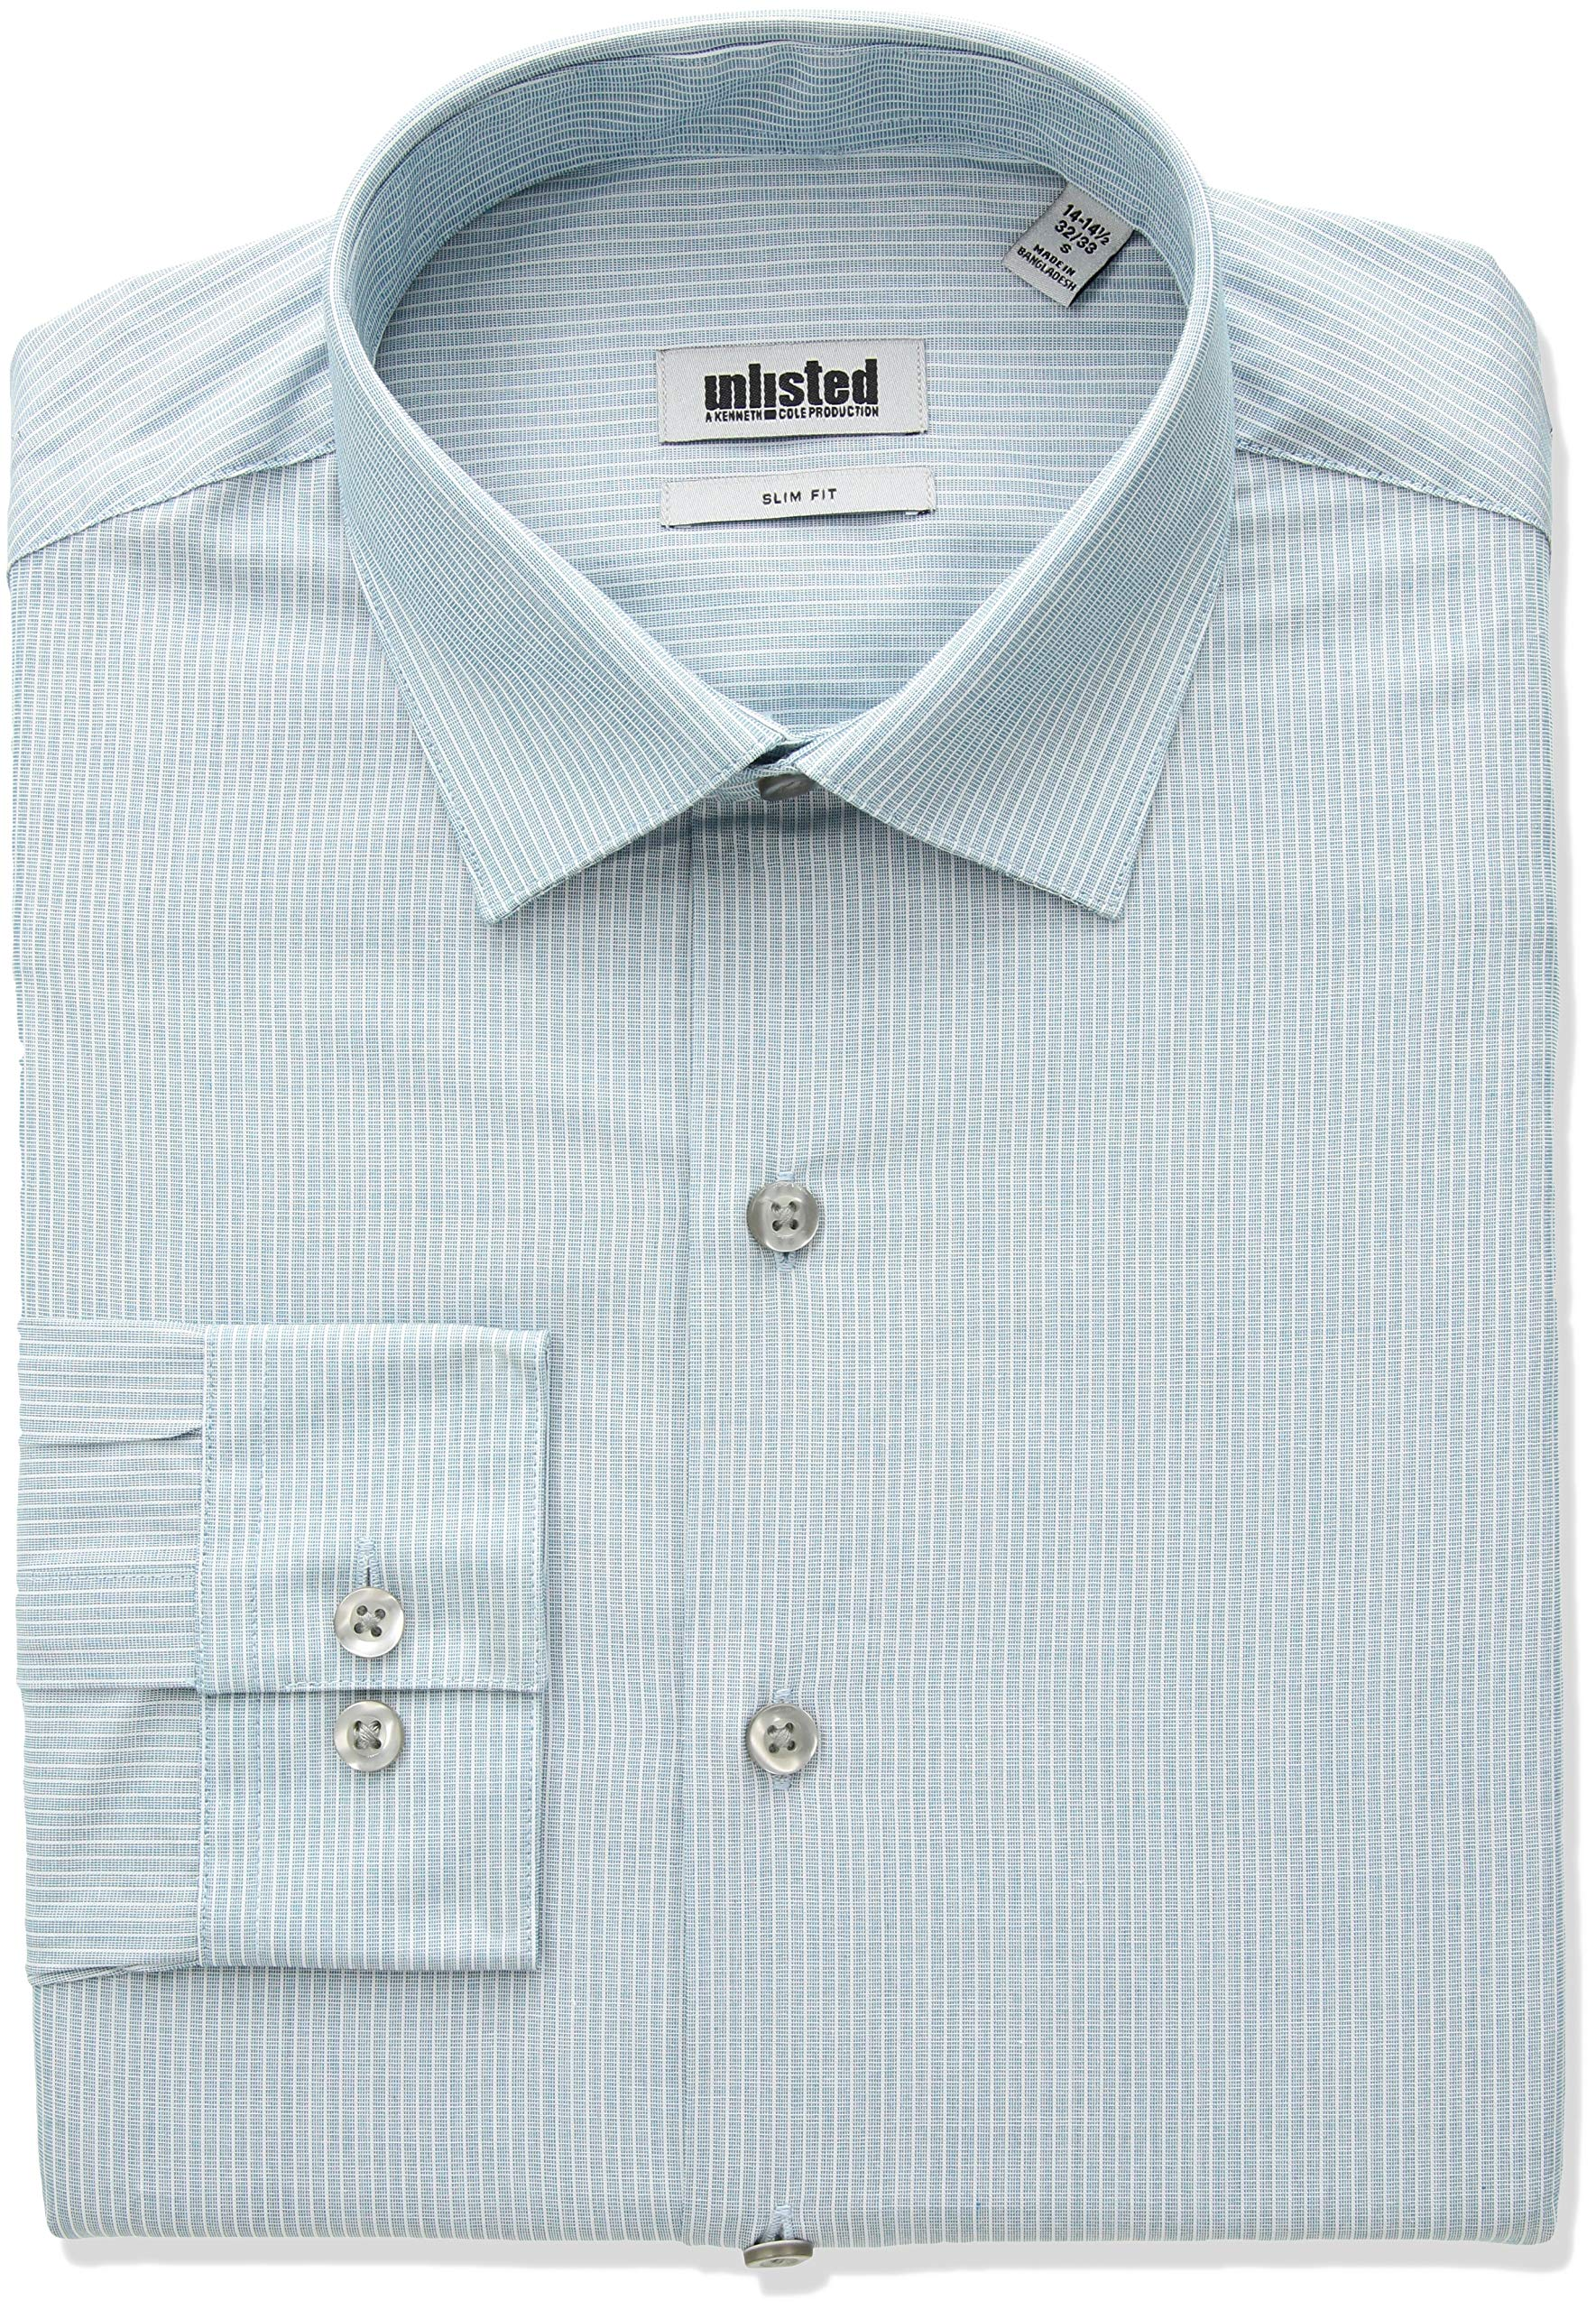 Kenneth Cole REACTION Men's Slim Fit Stripe Spread Collar Dress Shirt, Lagoon, 17''-17.5'' Neck 34''-35'' Sleeve